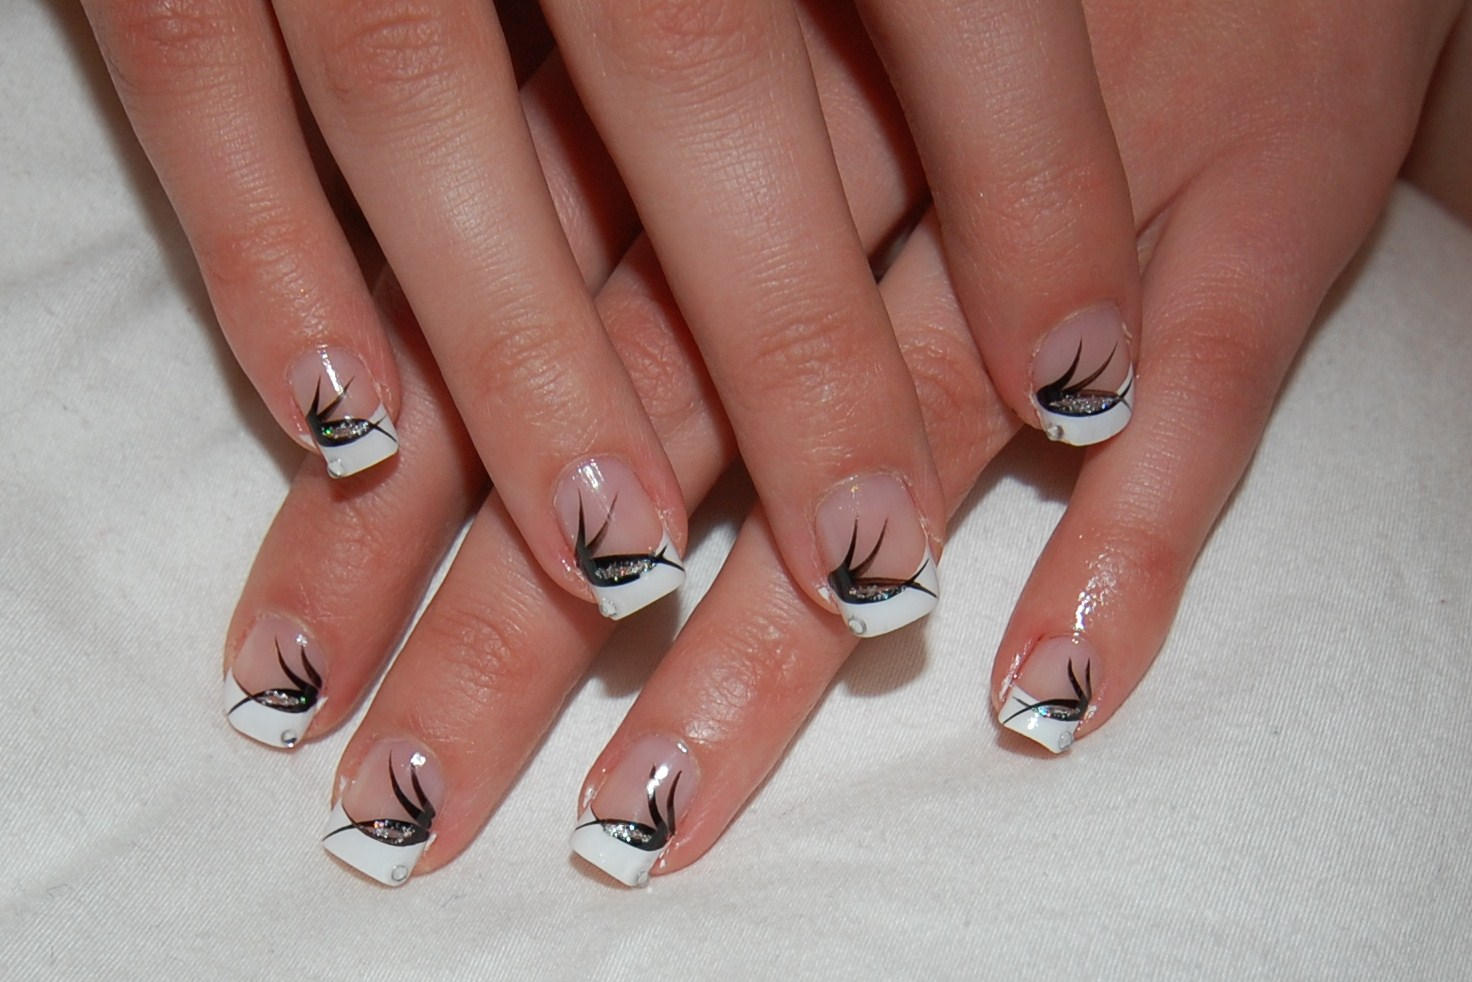 Acrylic nail designs with black tips buy pc false acrylic nail acrylic nail designs with black tips french tips with black nail art and crystal on prinsesfo Choice Image